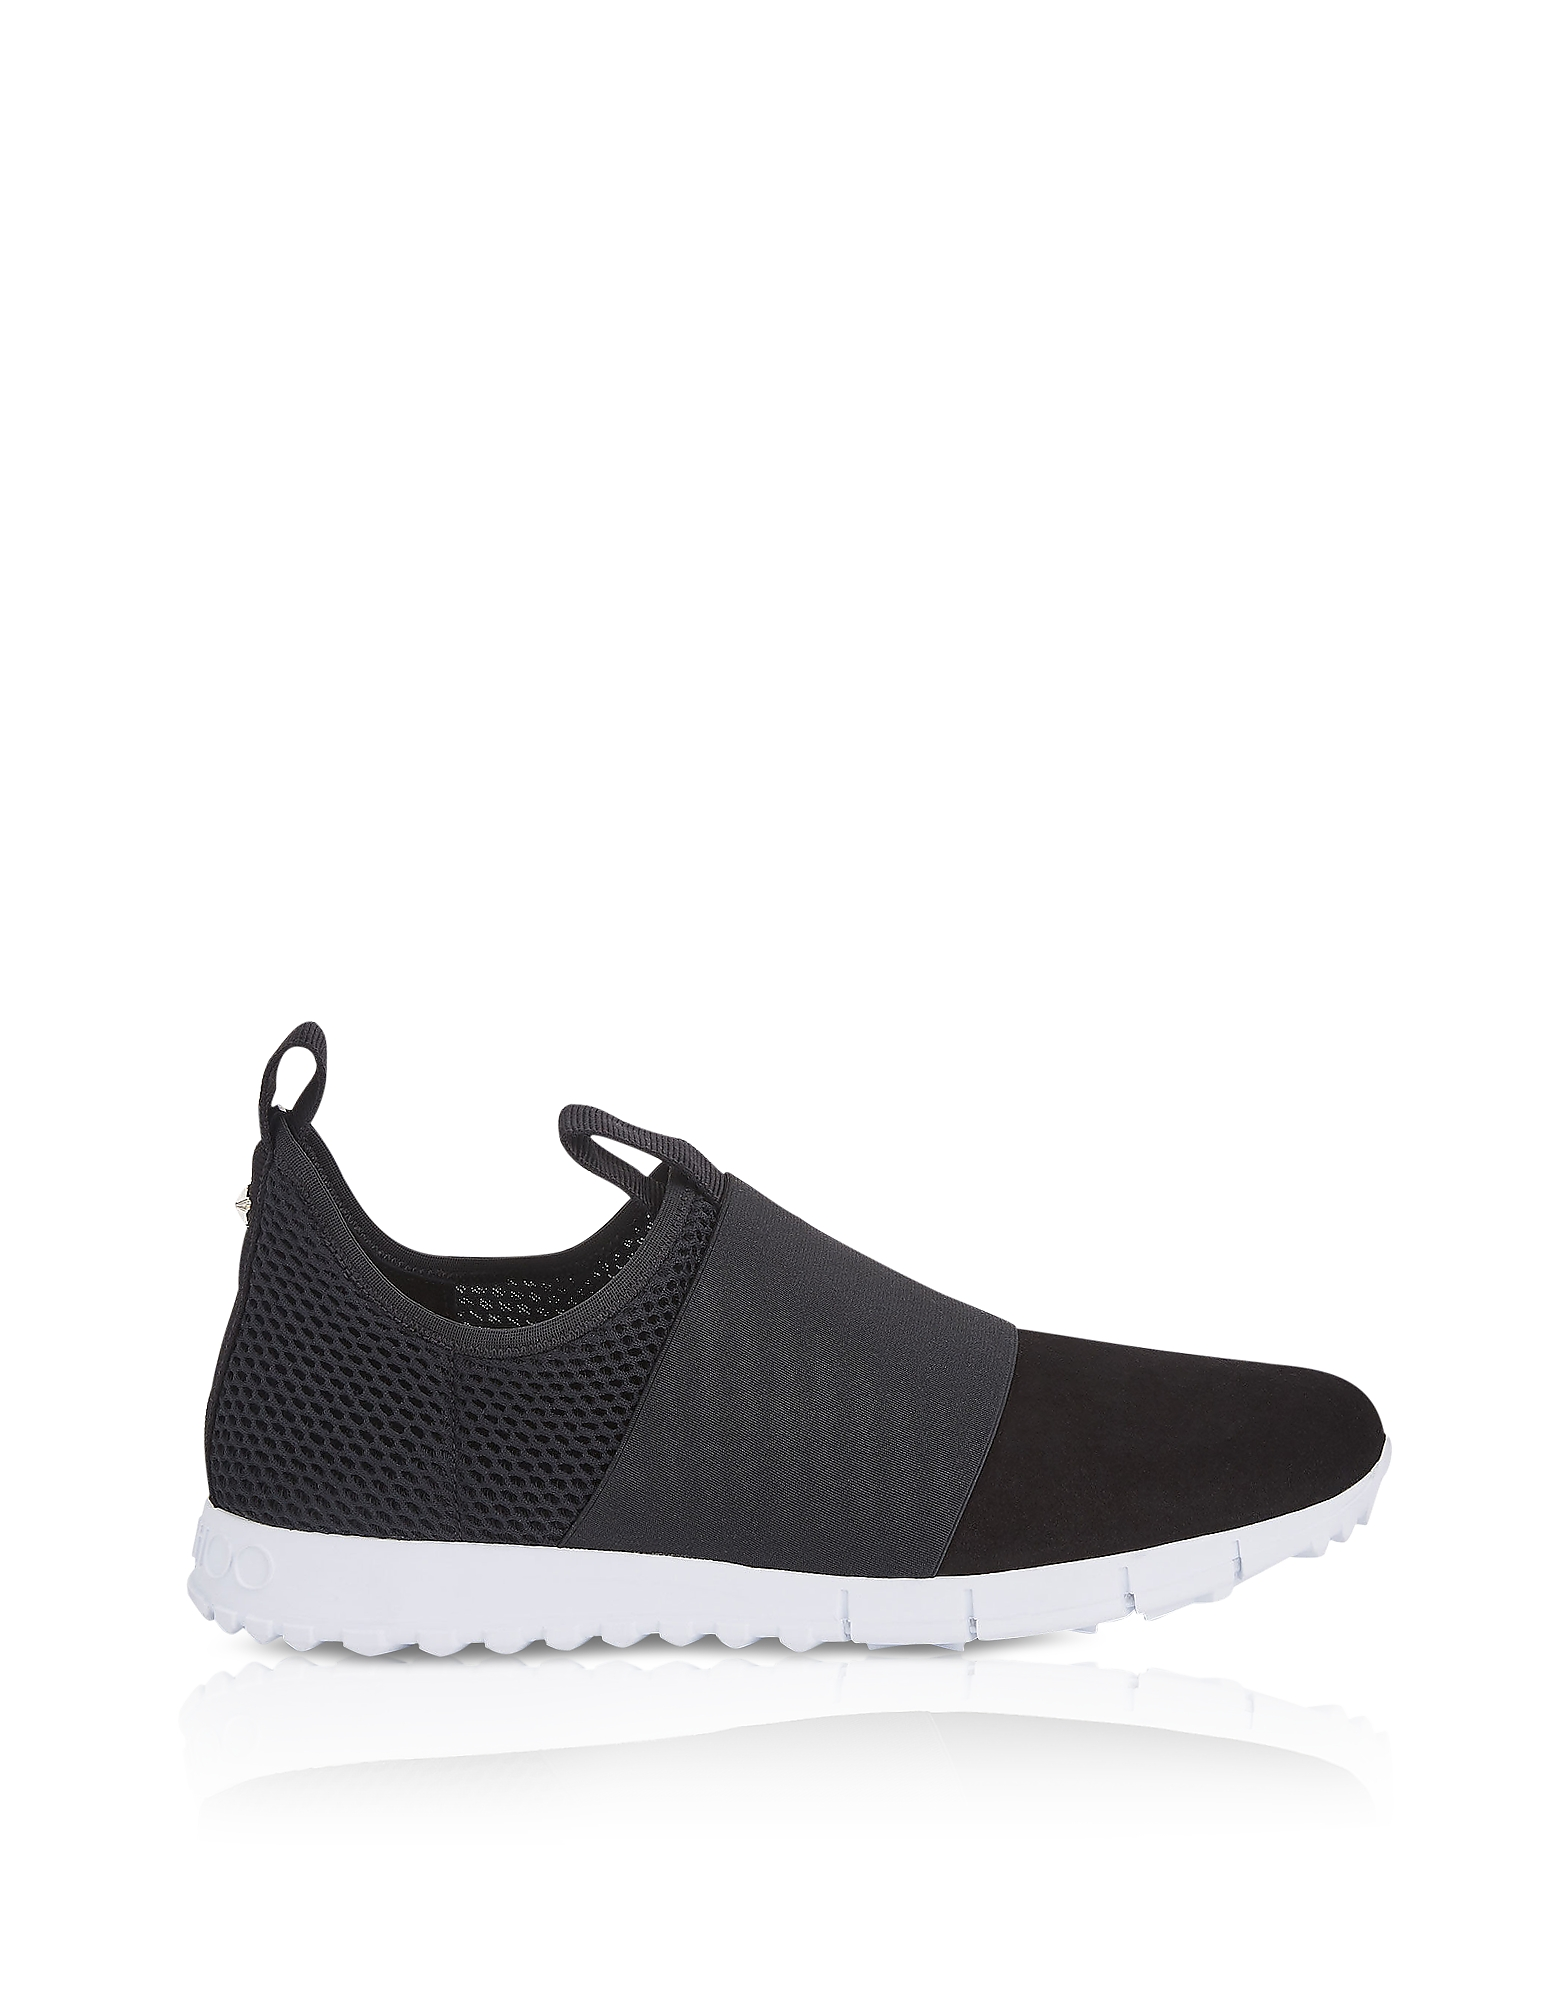 OAKLAND/M BLACK MESH AND SUEDE SLIP ON TRAINERS from FORZIERI